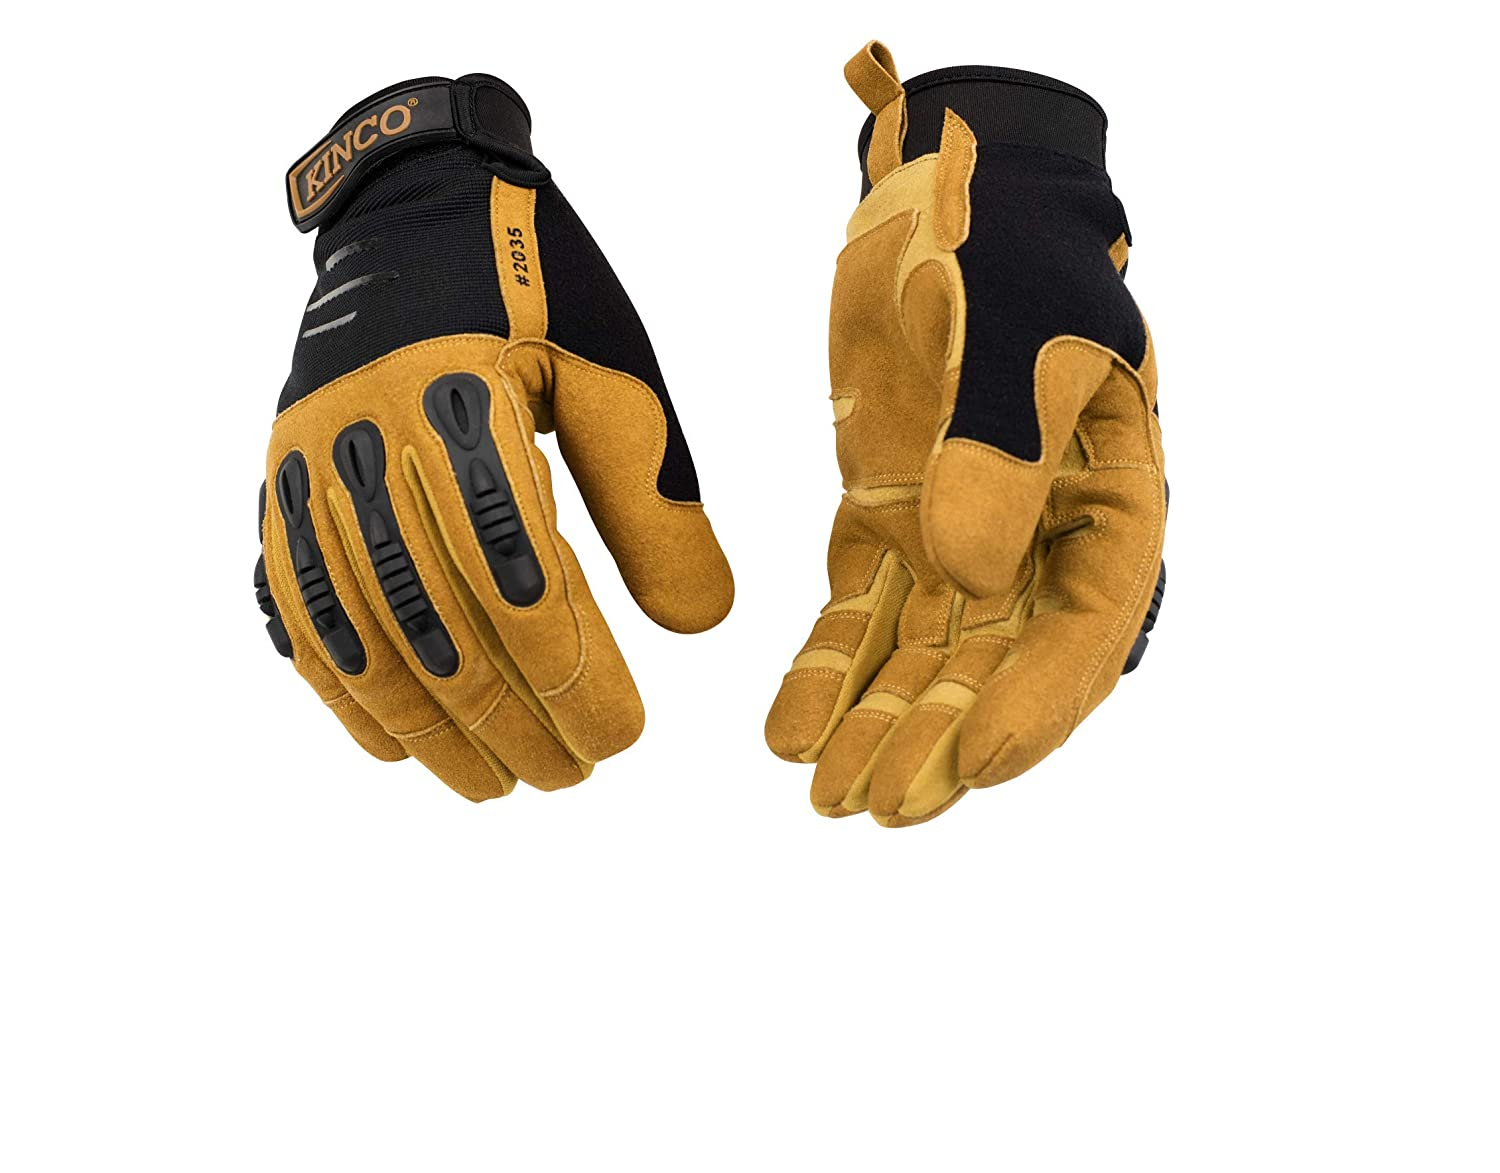 KincoPro Foreman Synthetic with Impact Protection & Pull-Strap